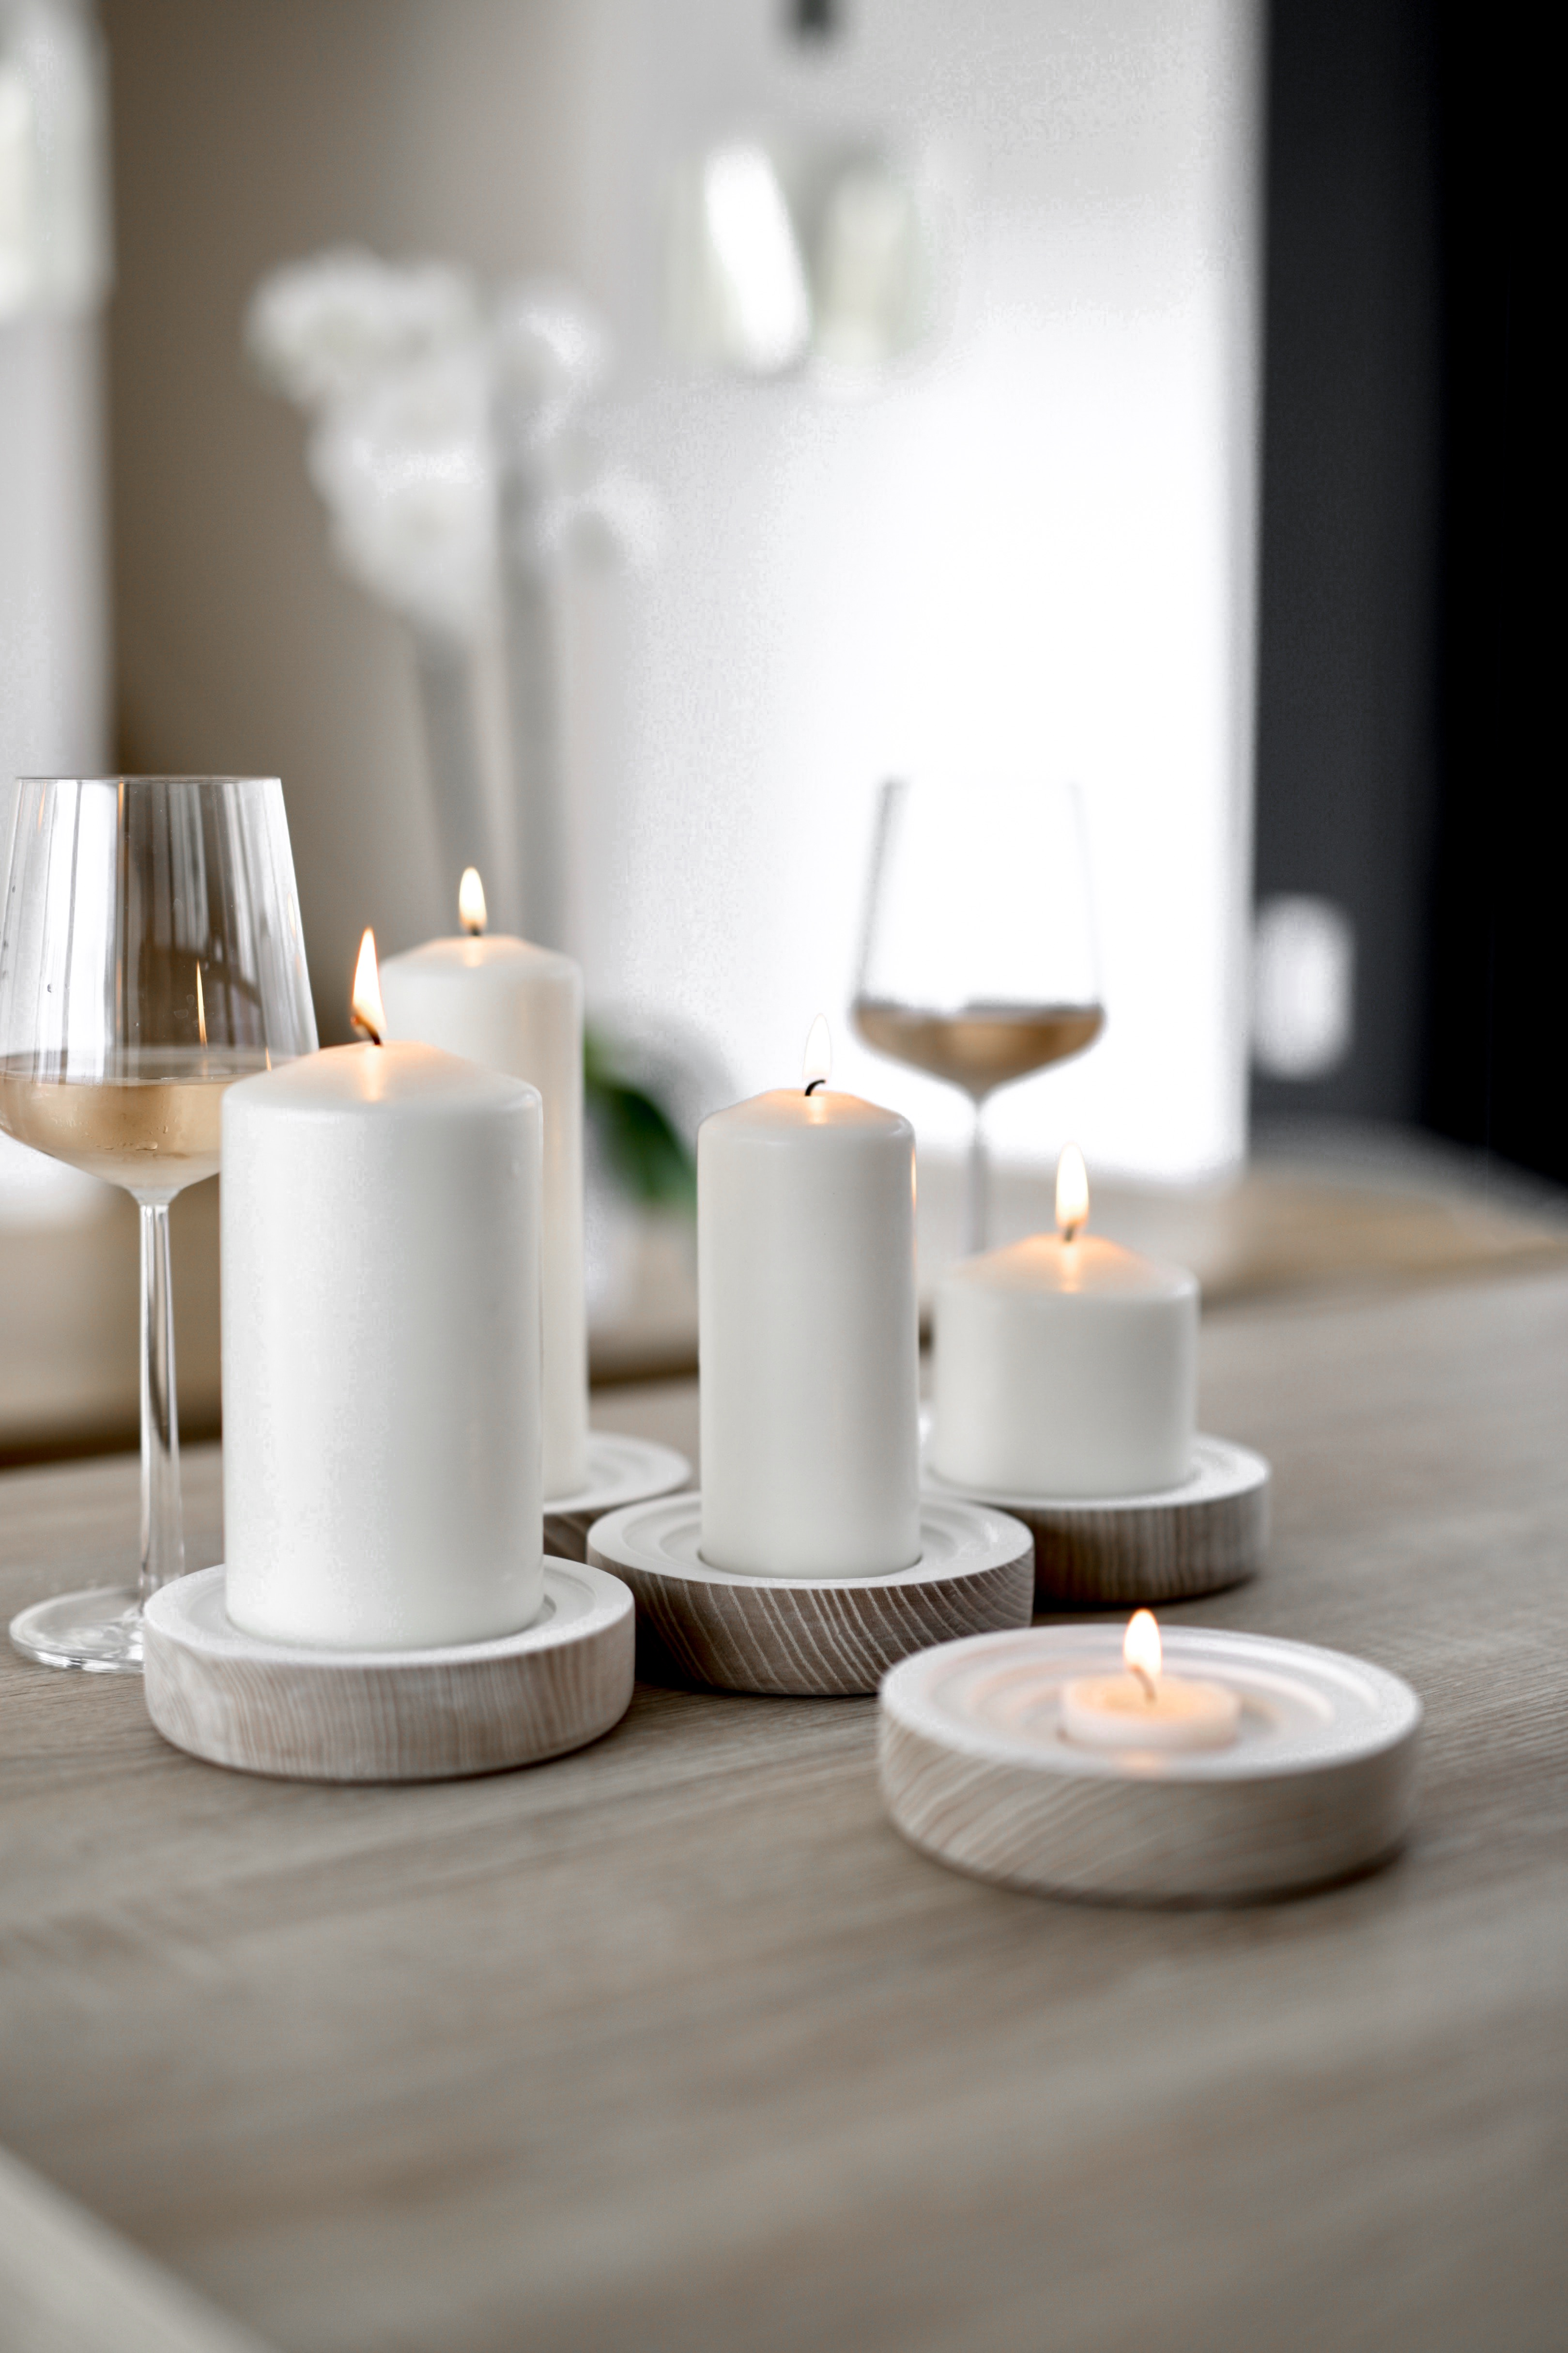 Image of a bright room with wine glasses and candles, depicting an environment very appealing to one's sense of smell